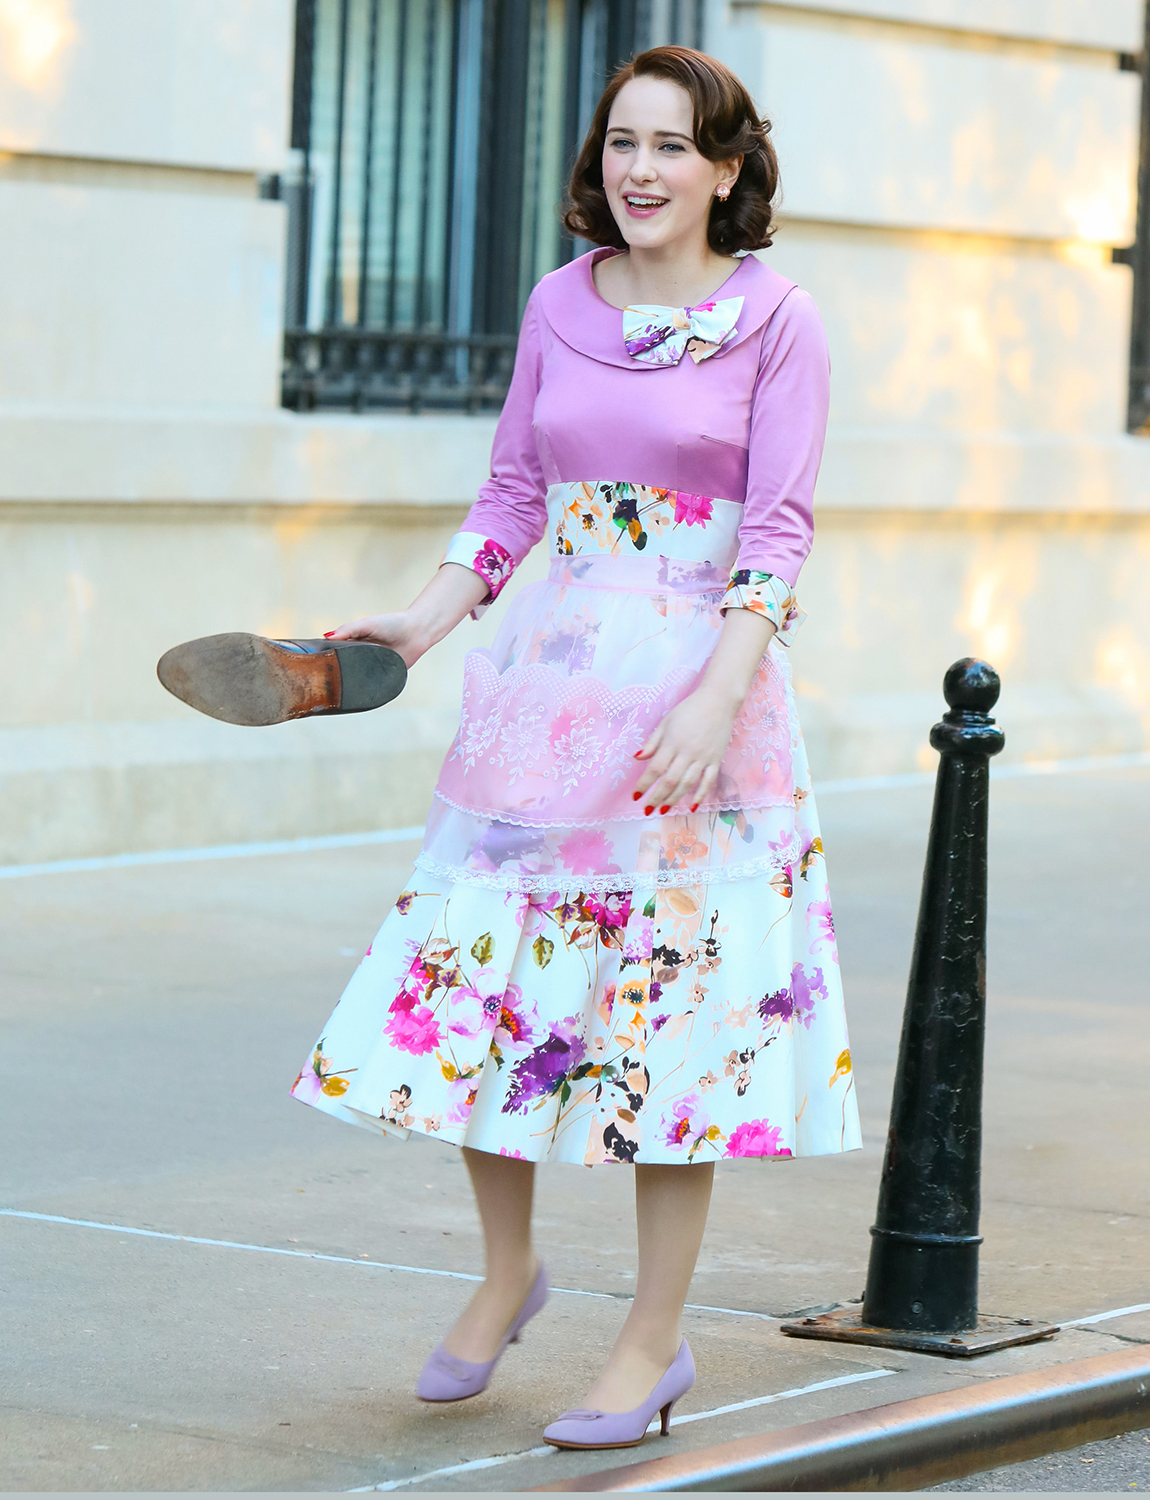 Rachel Brosnahan is seen at the film set of 'The Marvelous Mrs Maisel' TV Series on May 13, 2021 in New York City